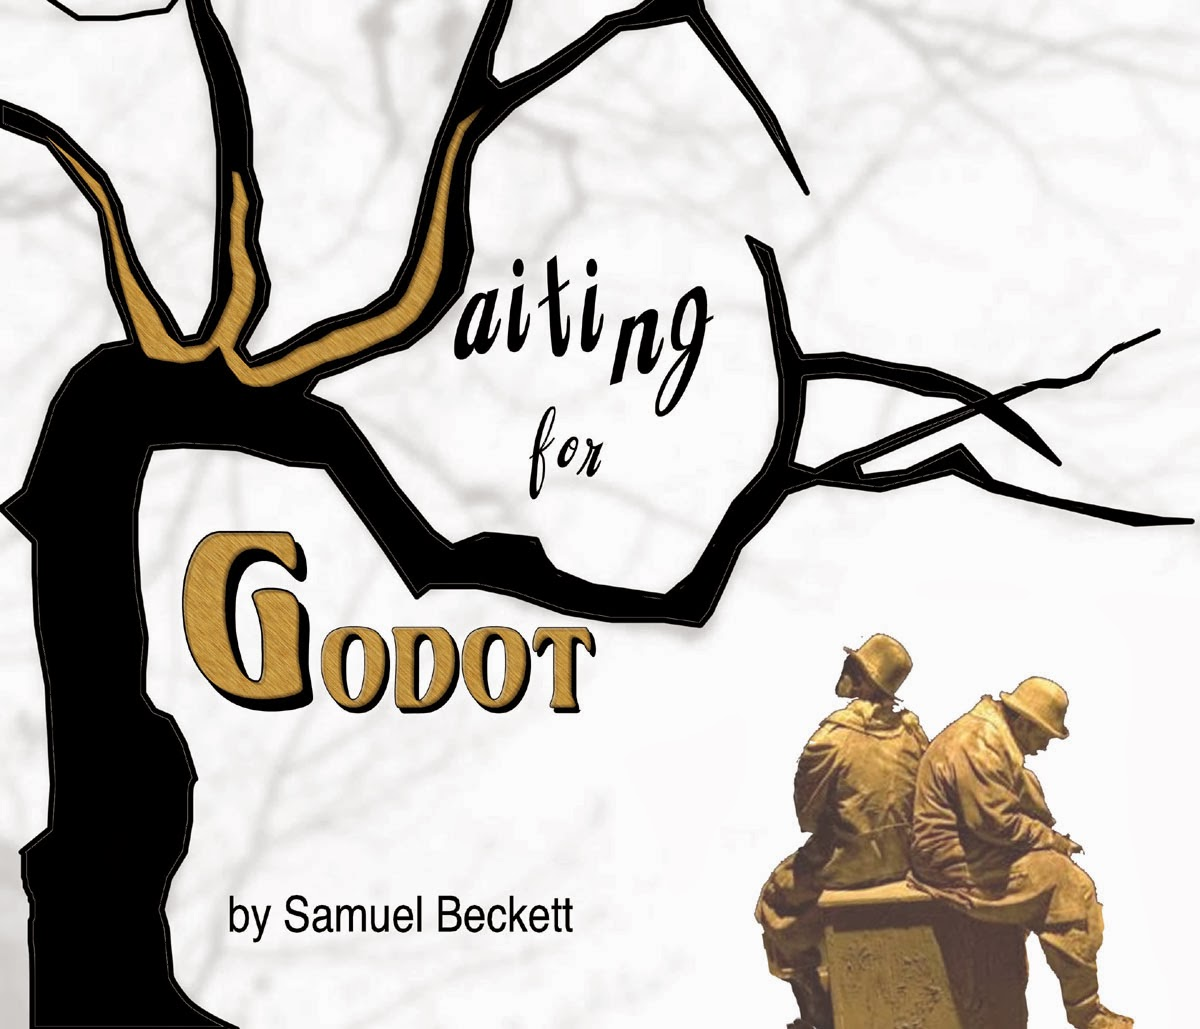 the purpose of human life in waiting for godot by samuel beckett Free essay: in waiting for godot, vladimir and estragon spent the entire play   that humans spend their lives waiting to find out a meaning for their existence to  just  how to live a positive life in waiting for godot by samuel beckett and the .